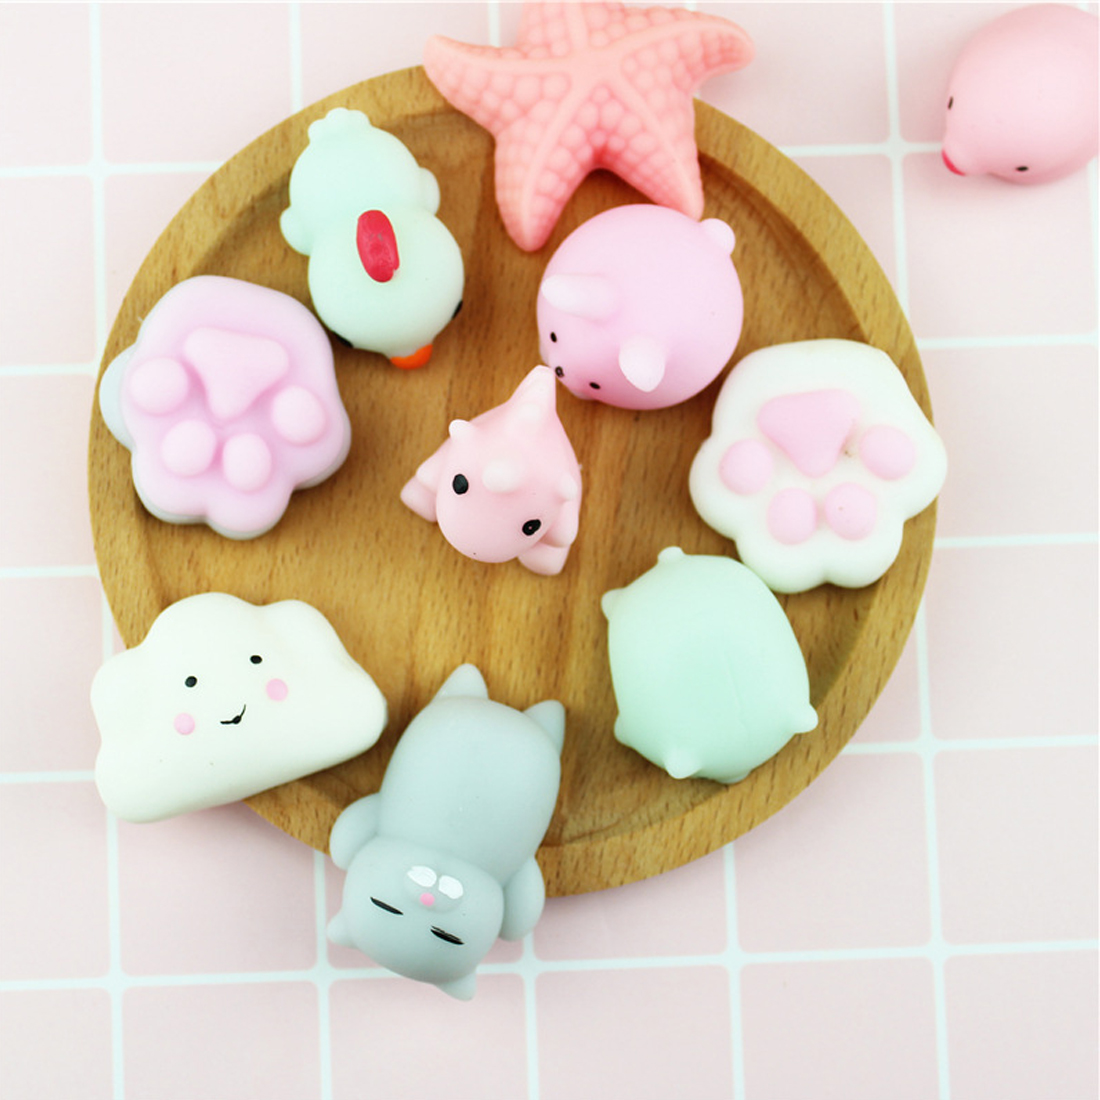 Luggage & Bags Intelligent 1pcs Kawaii Soft Slow Rising Squeeze Toy Macaron Dessert Cake Cute Cell Phone Straps Kids Toys Gift Charms Cream Bread Scented